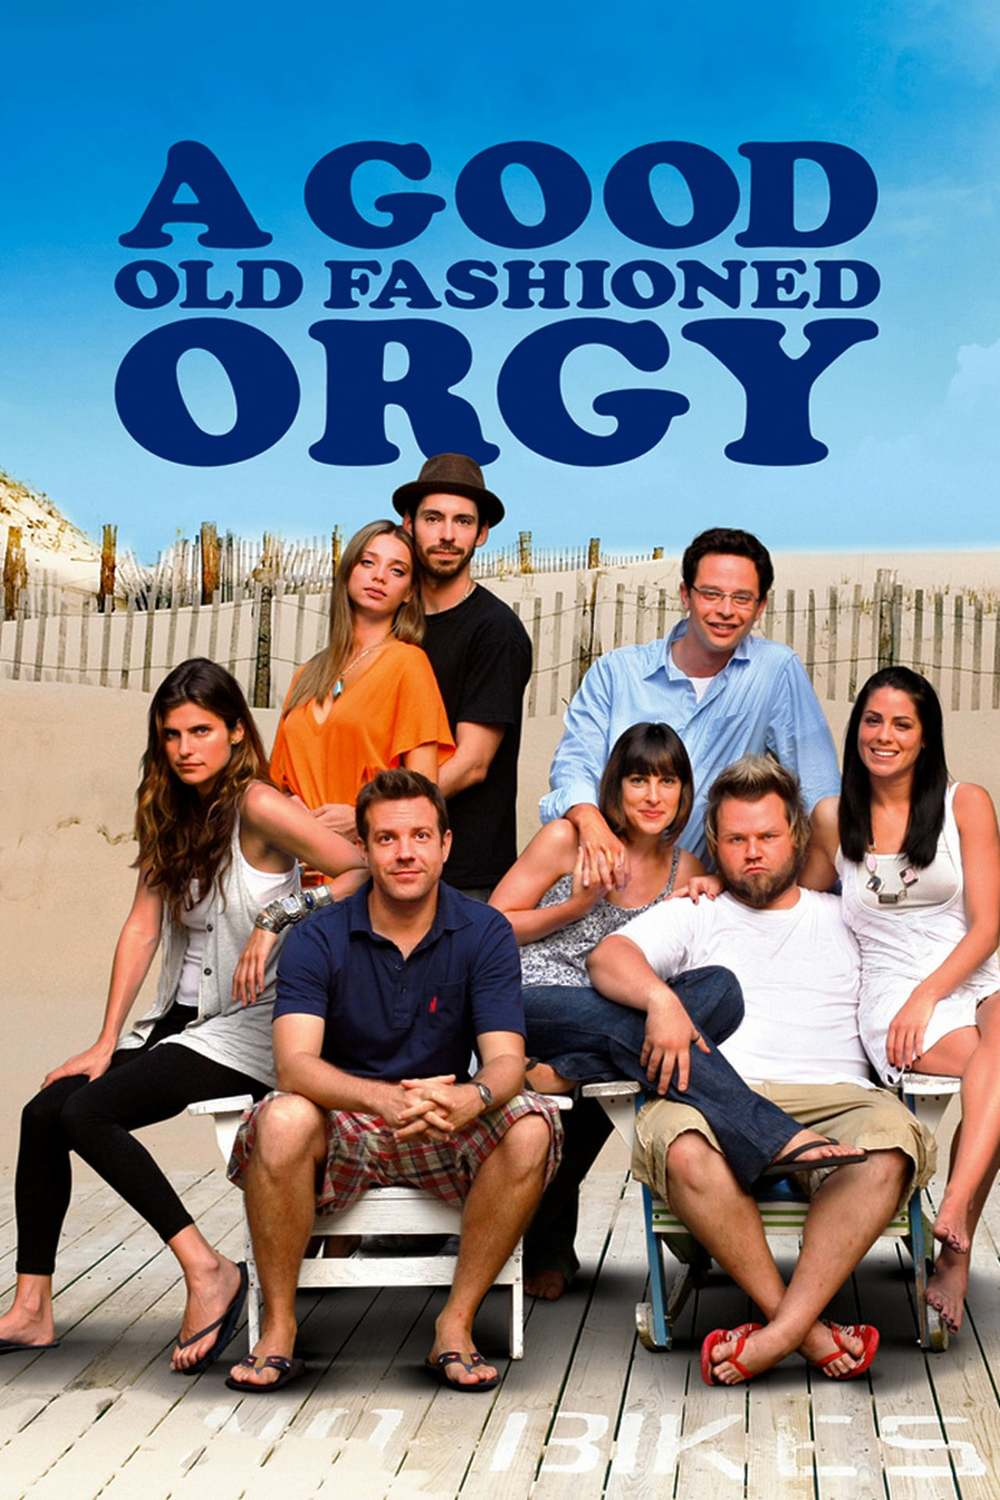 A Good Old Fashioned Orgy | Fandíme filmu